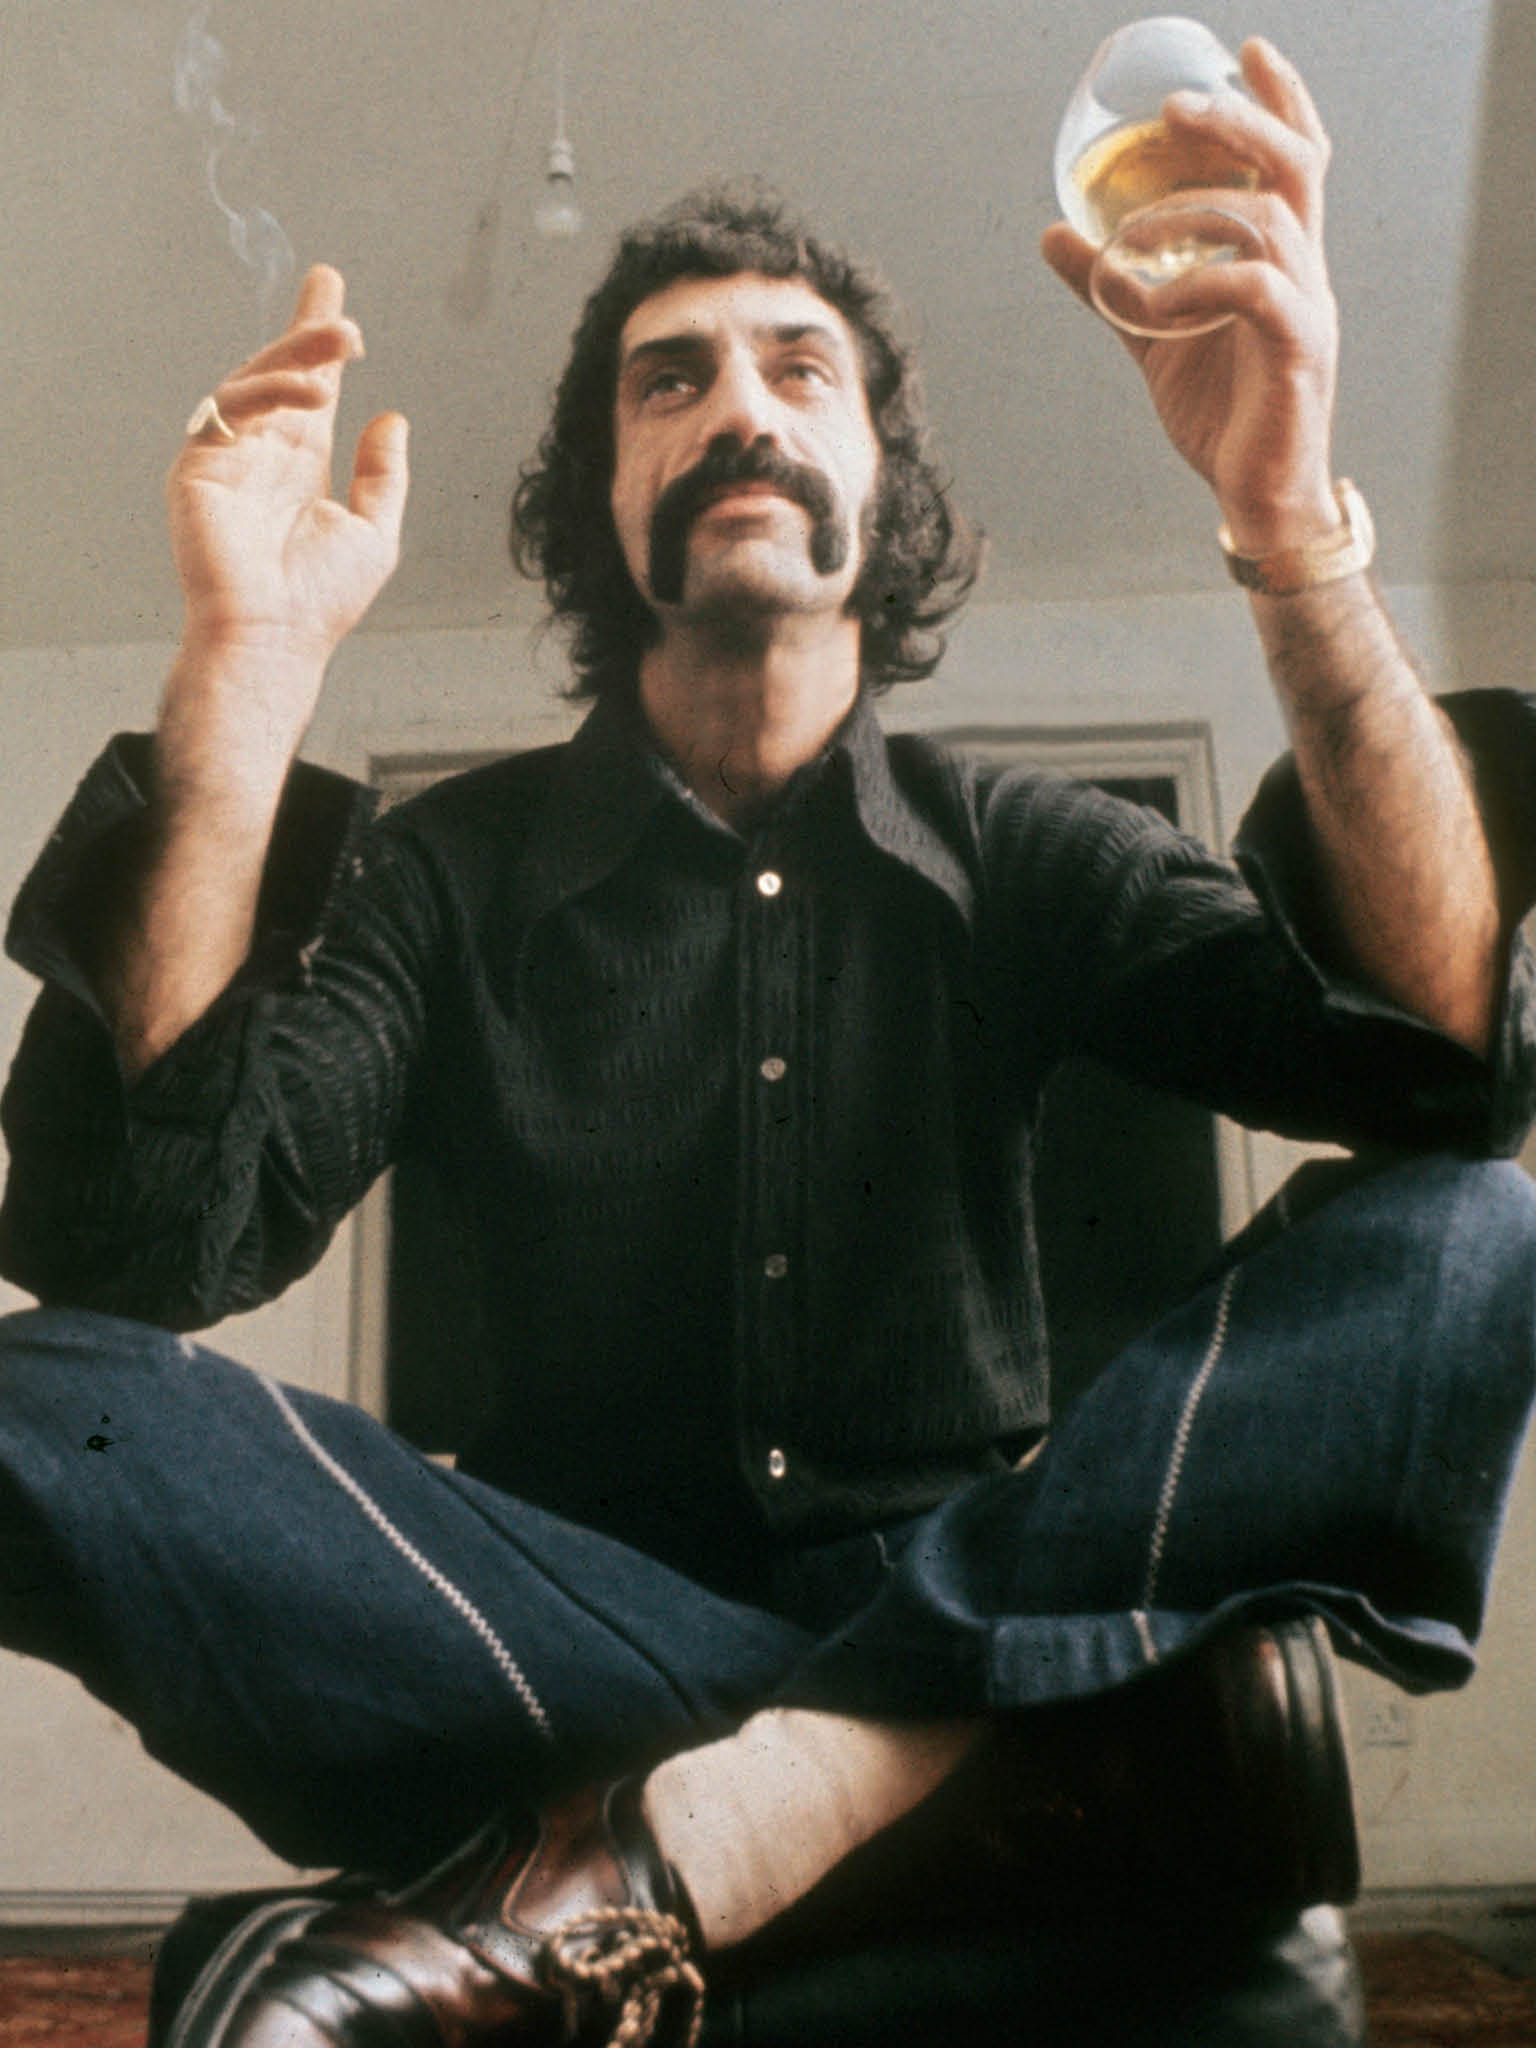 Frank Zappa (1940-1993) compositeur et musicien de rock, realisateur americain vers 1980 --- Frank Zappa (1940-1993) american rock composer and musician c. 1980, Image: 166654833, License: Rights-managed, Restrictions: Utilisation exclusivement editoriale. Droits additionnels requis pour utilisation commerciale ou promotionnelle, y compris couvertures de livres. RDA ne garantit pas les droits a l'image de la personne representee. L'image ne doit pas etre modifiee., Model Release: no, Credit line: Profimedia, Rue des Archives